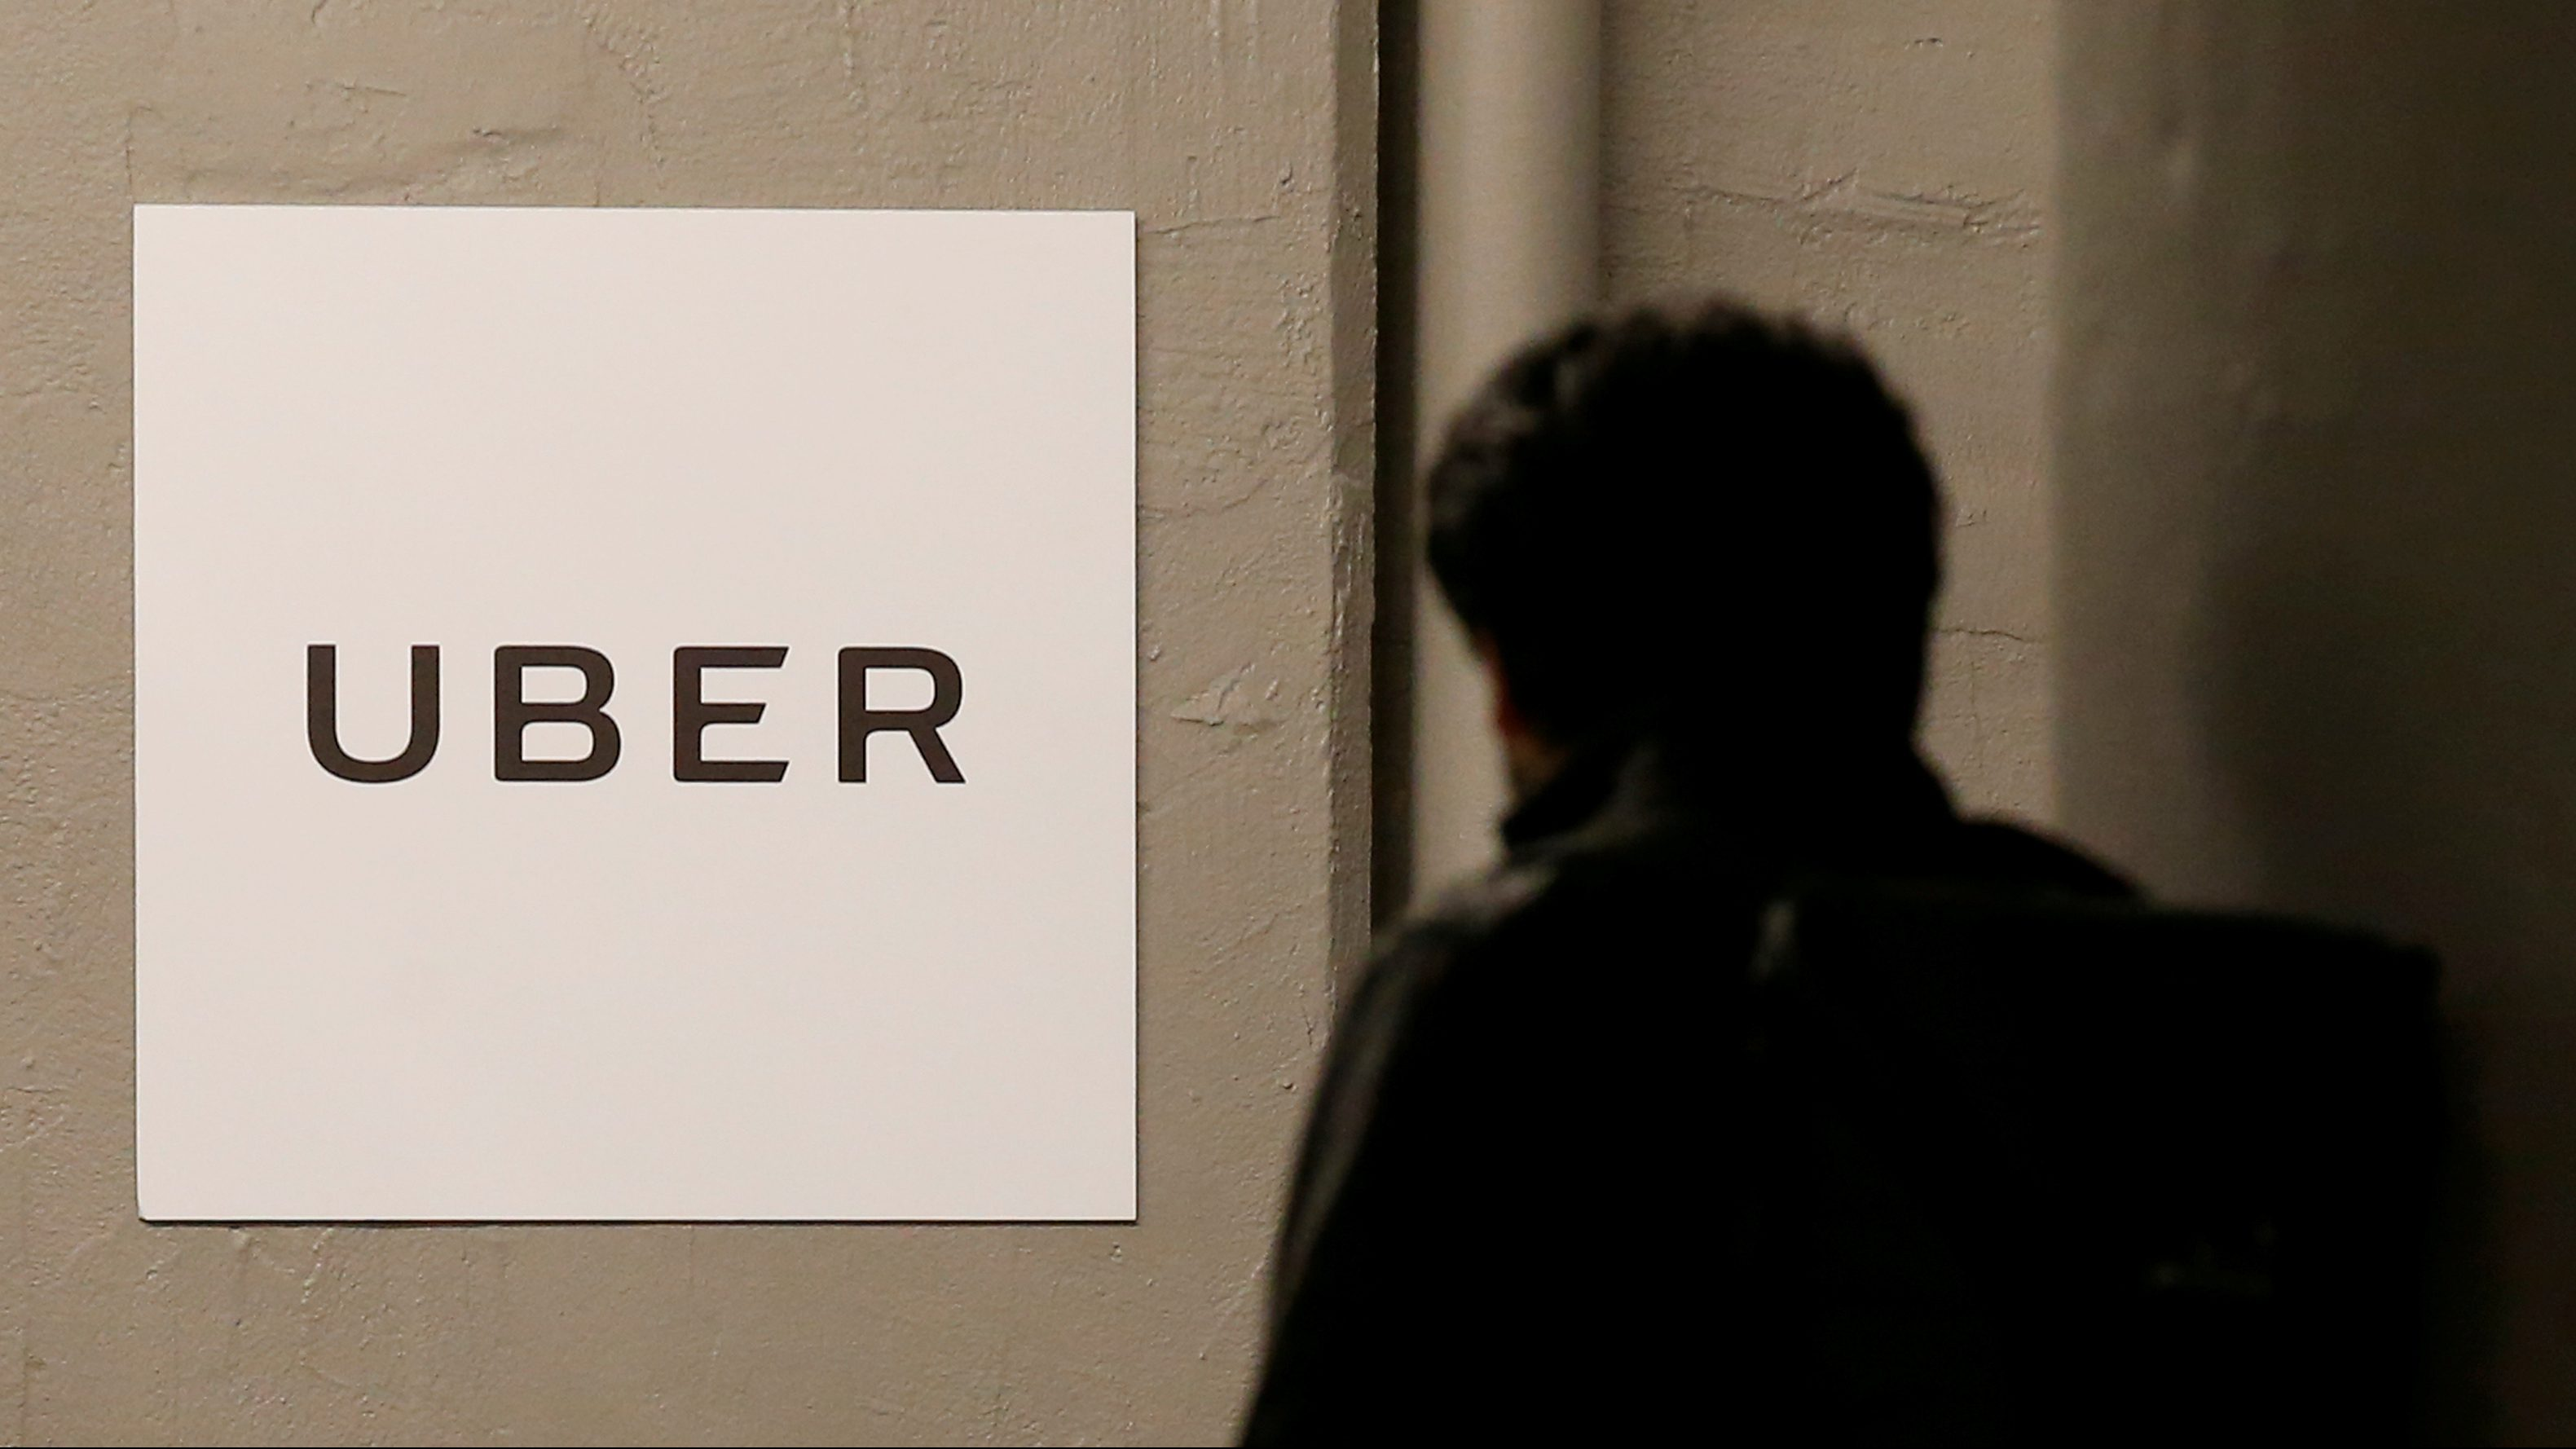 Uber offices in Queens, NY